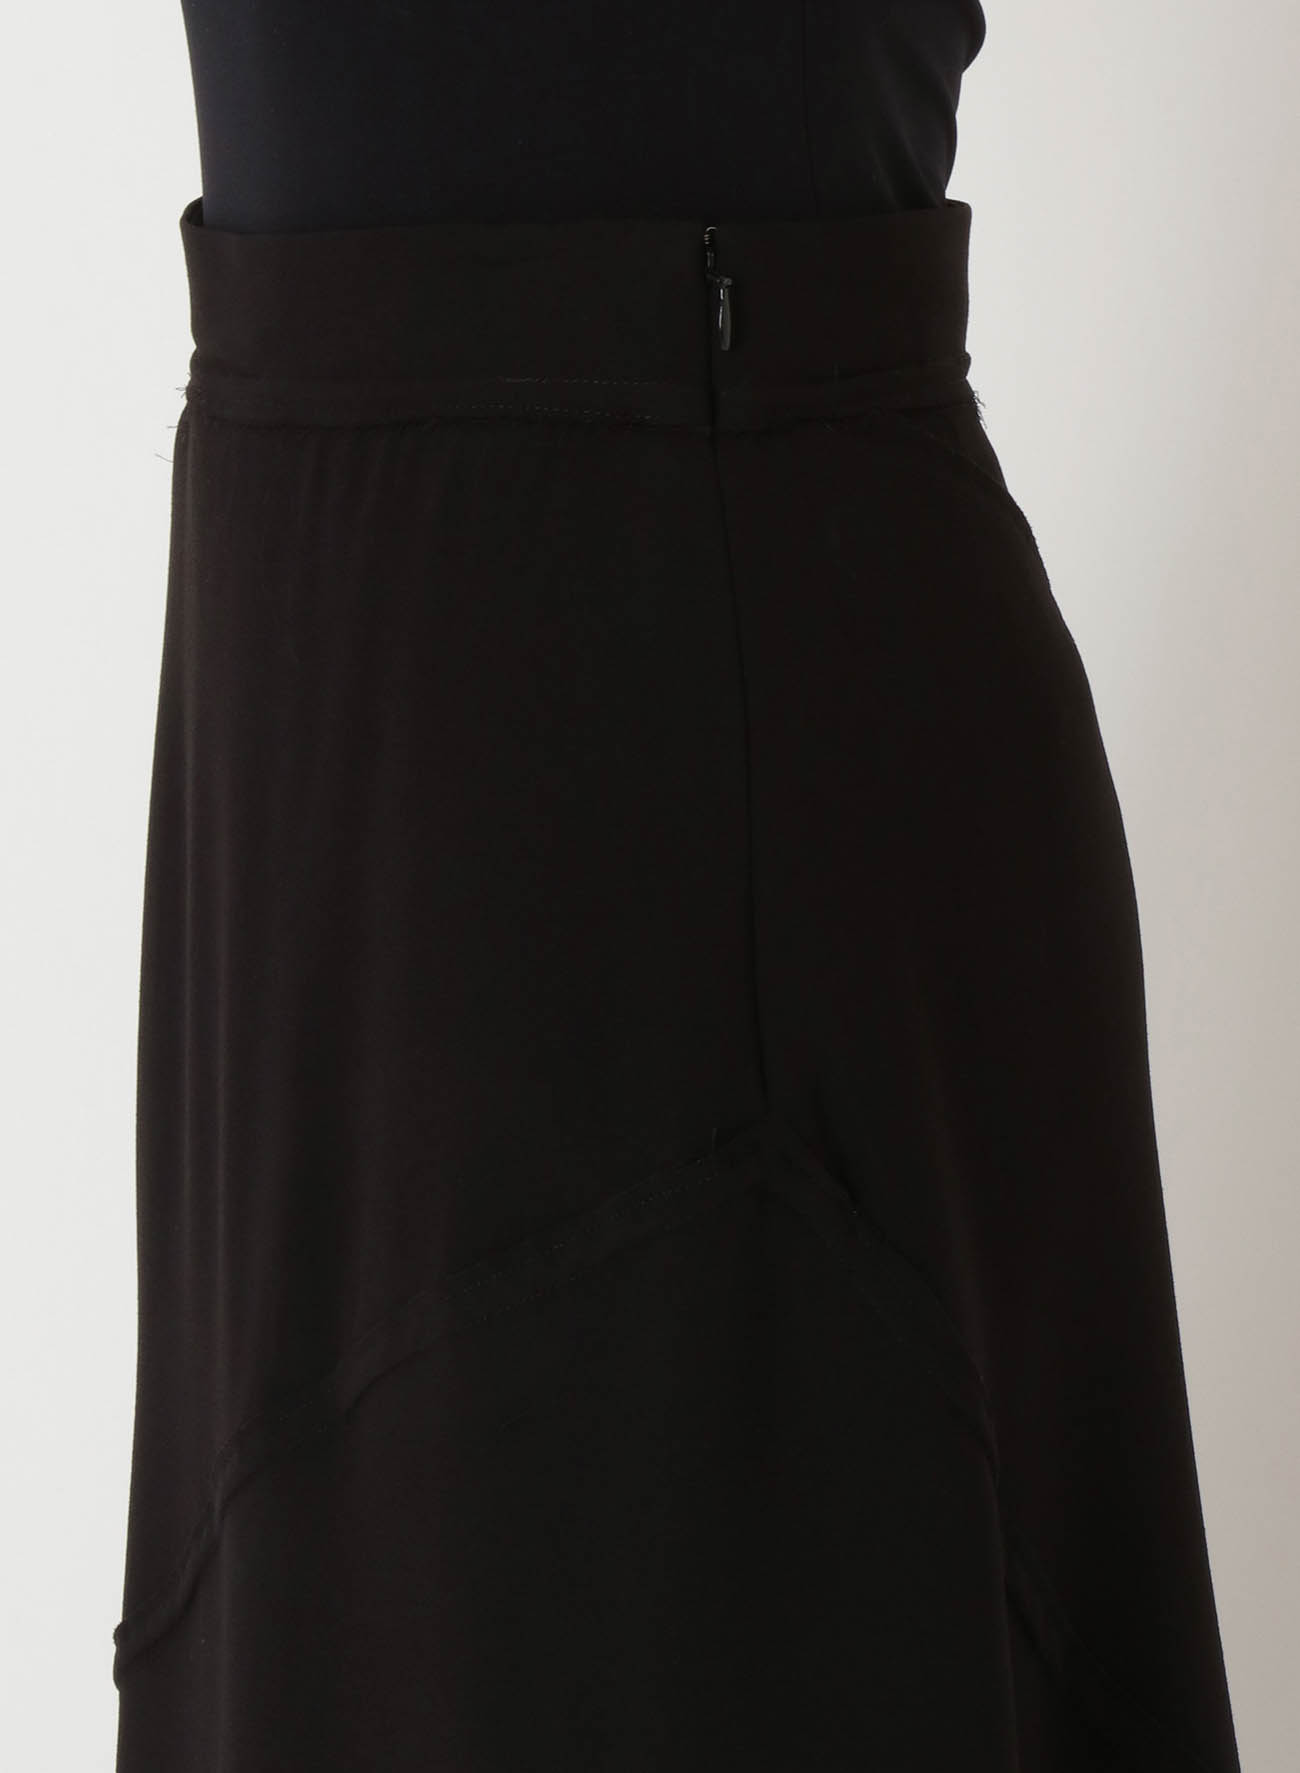 ACETATE POLYESTER GEORGETTE FLARE SKIRT